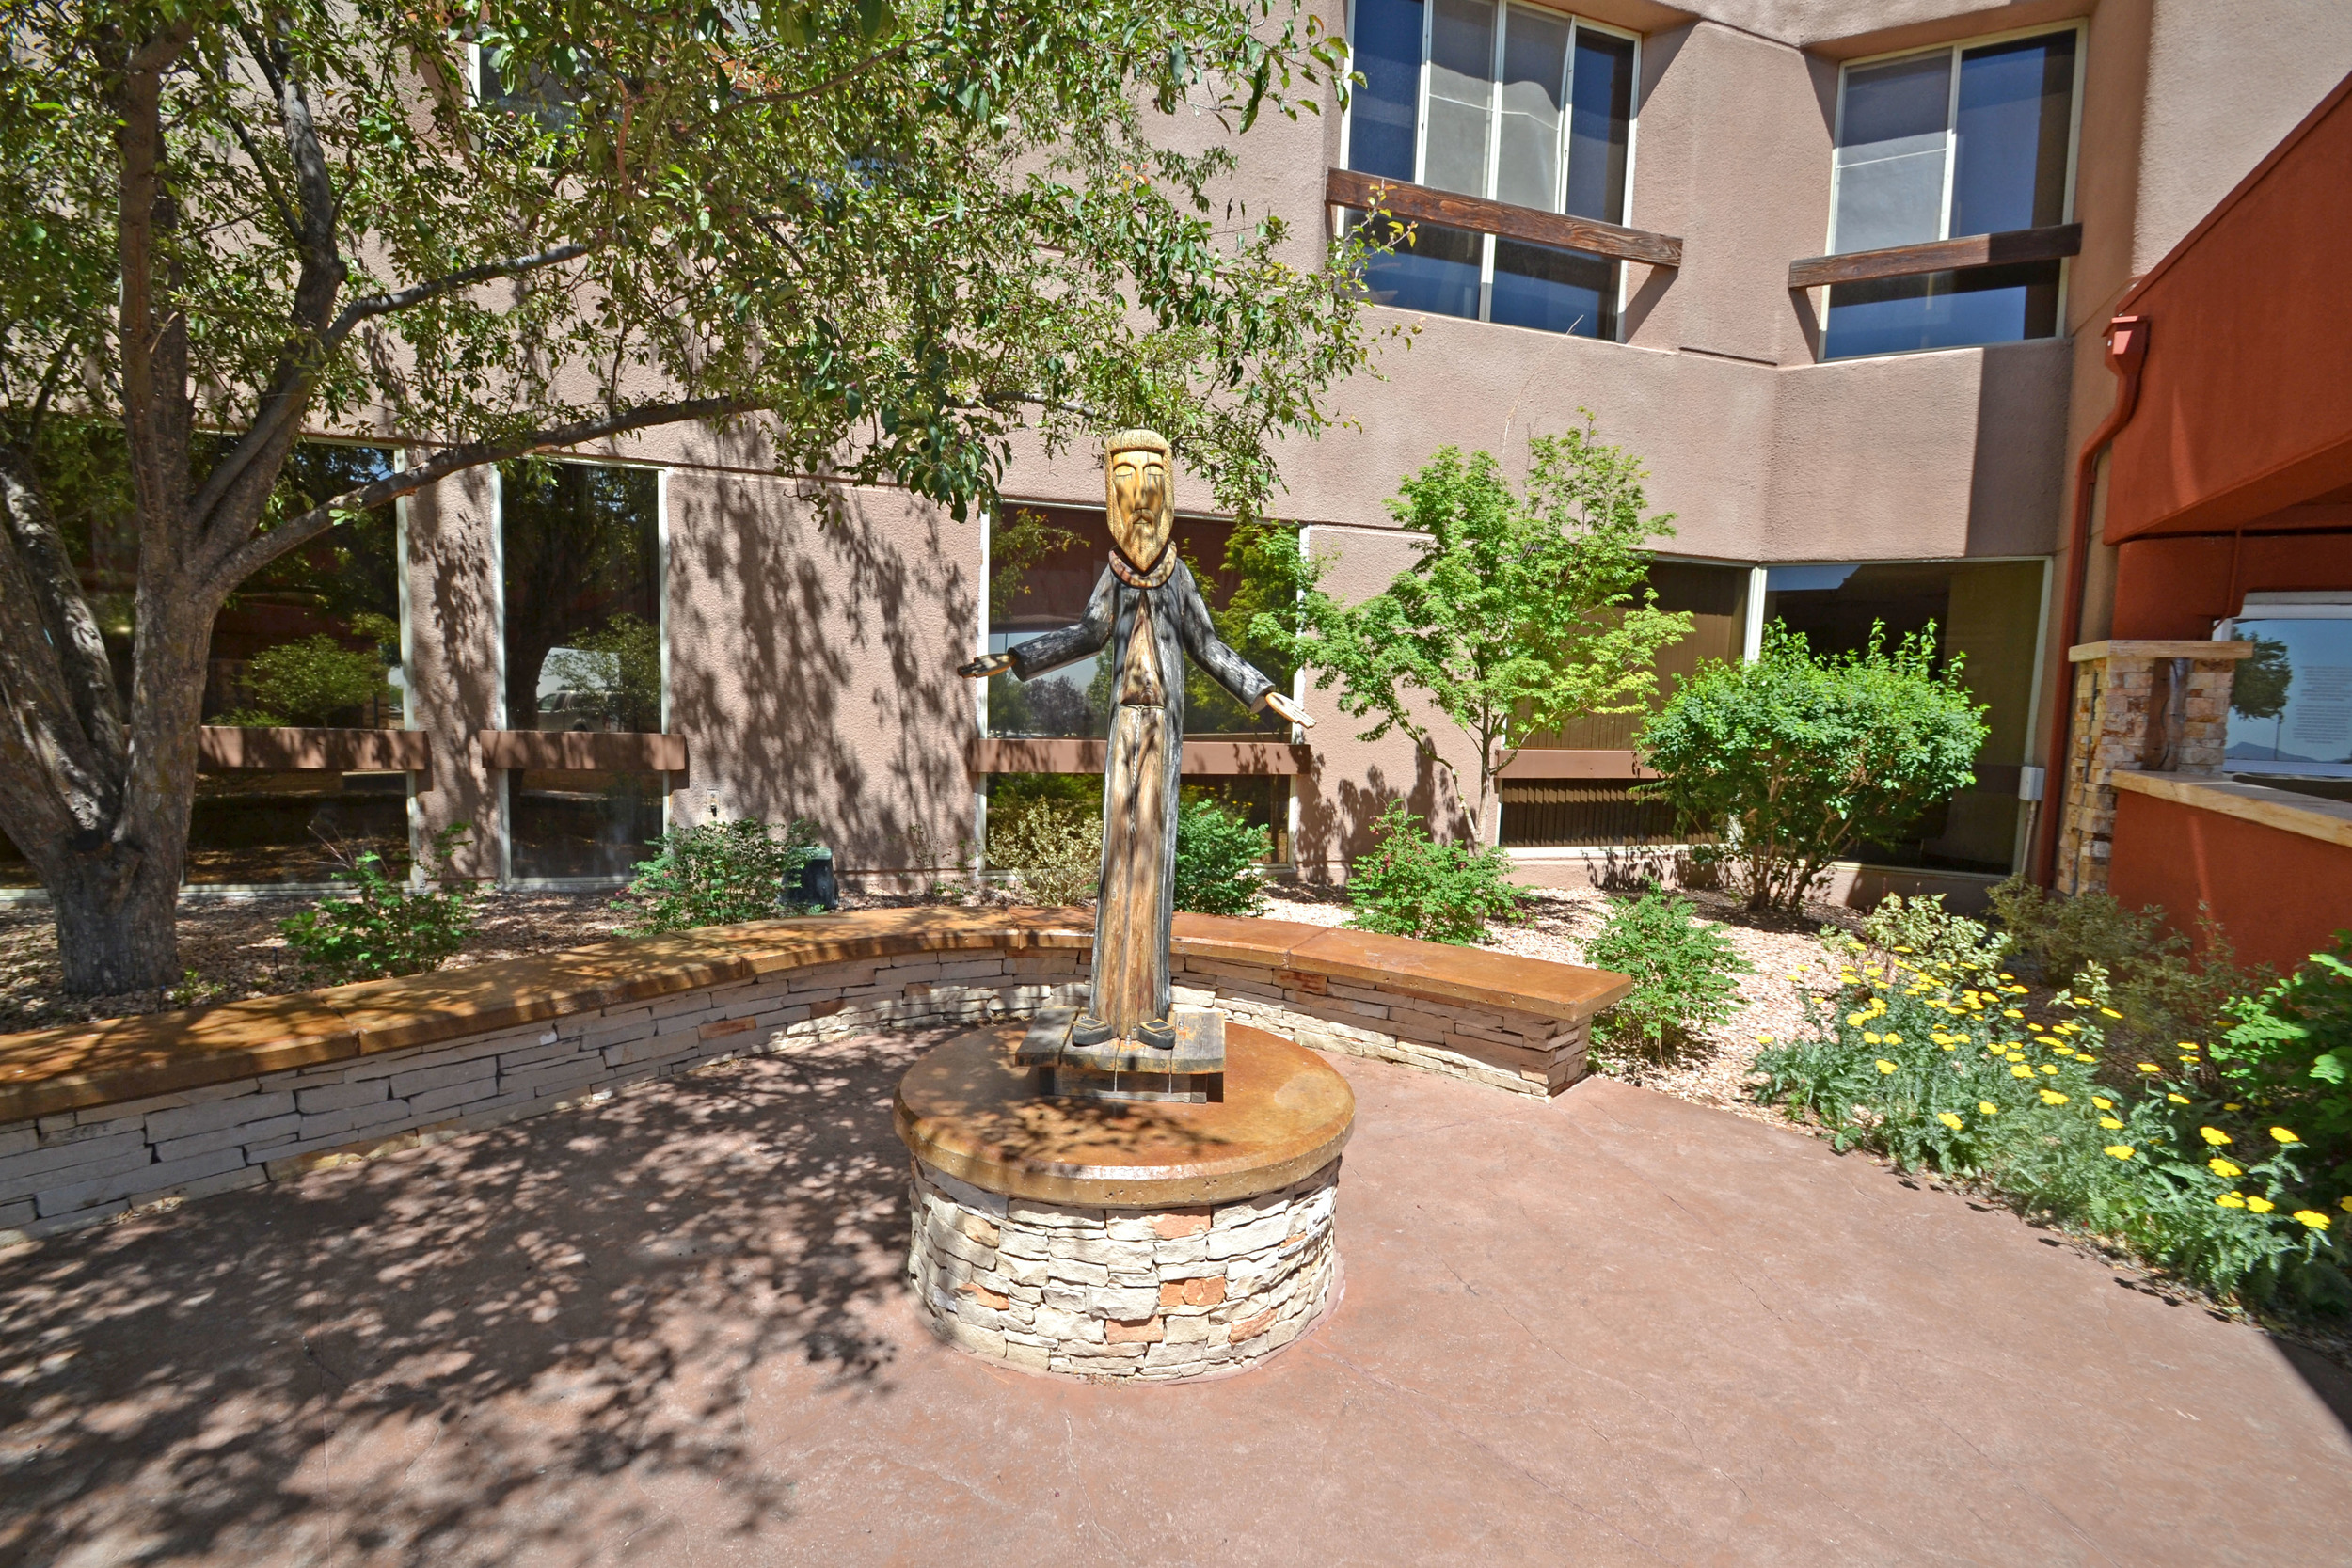 Sculpture is integrated into the courtyards